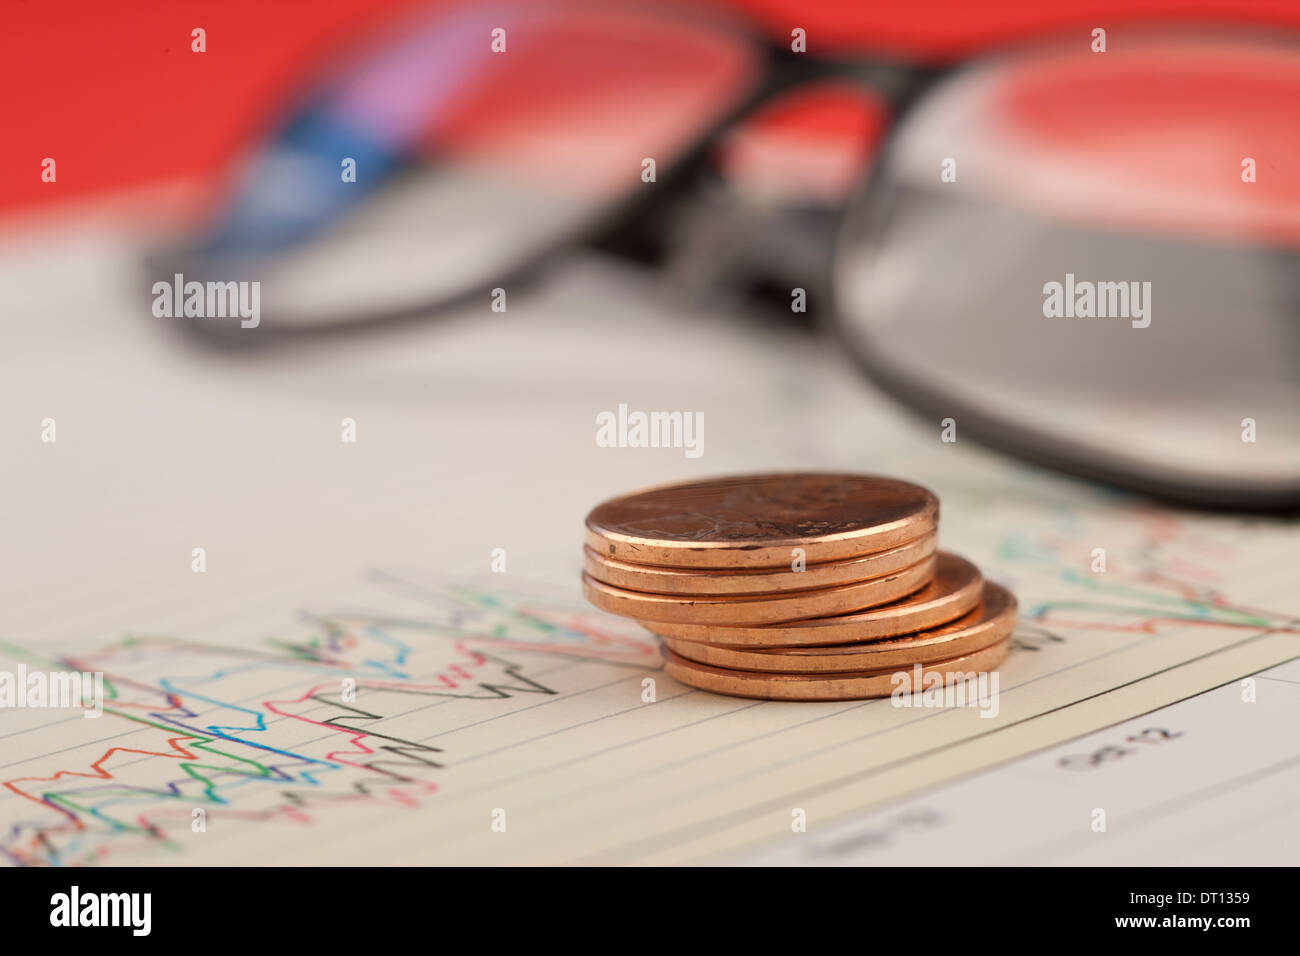 Pile of pennies on graph. - Stock Image